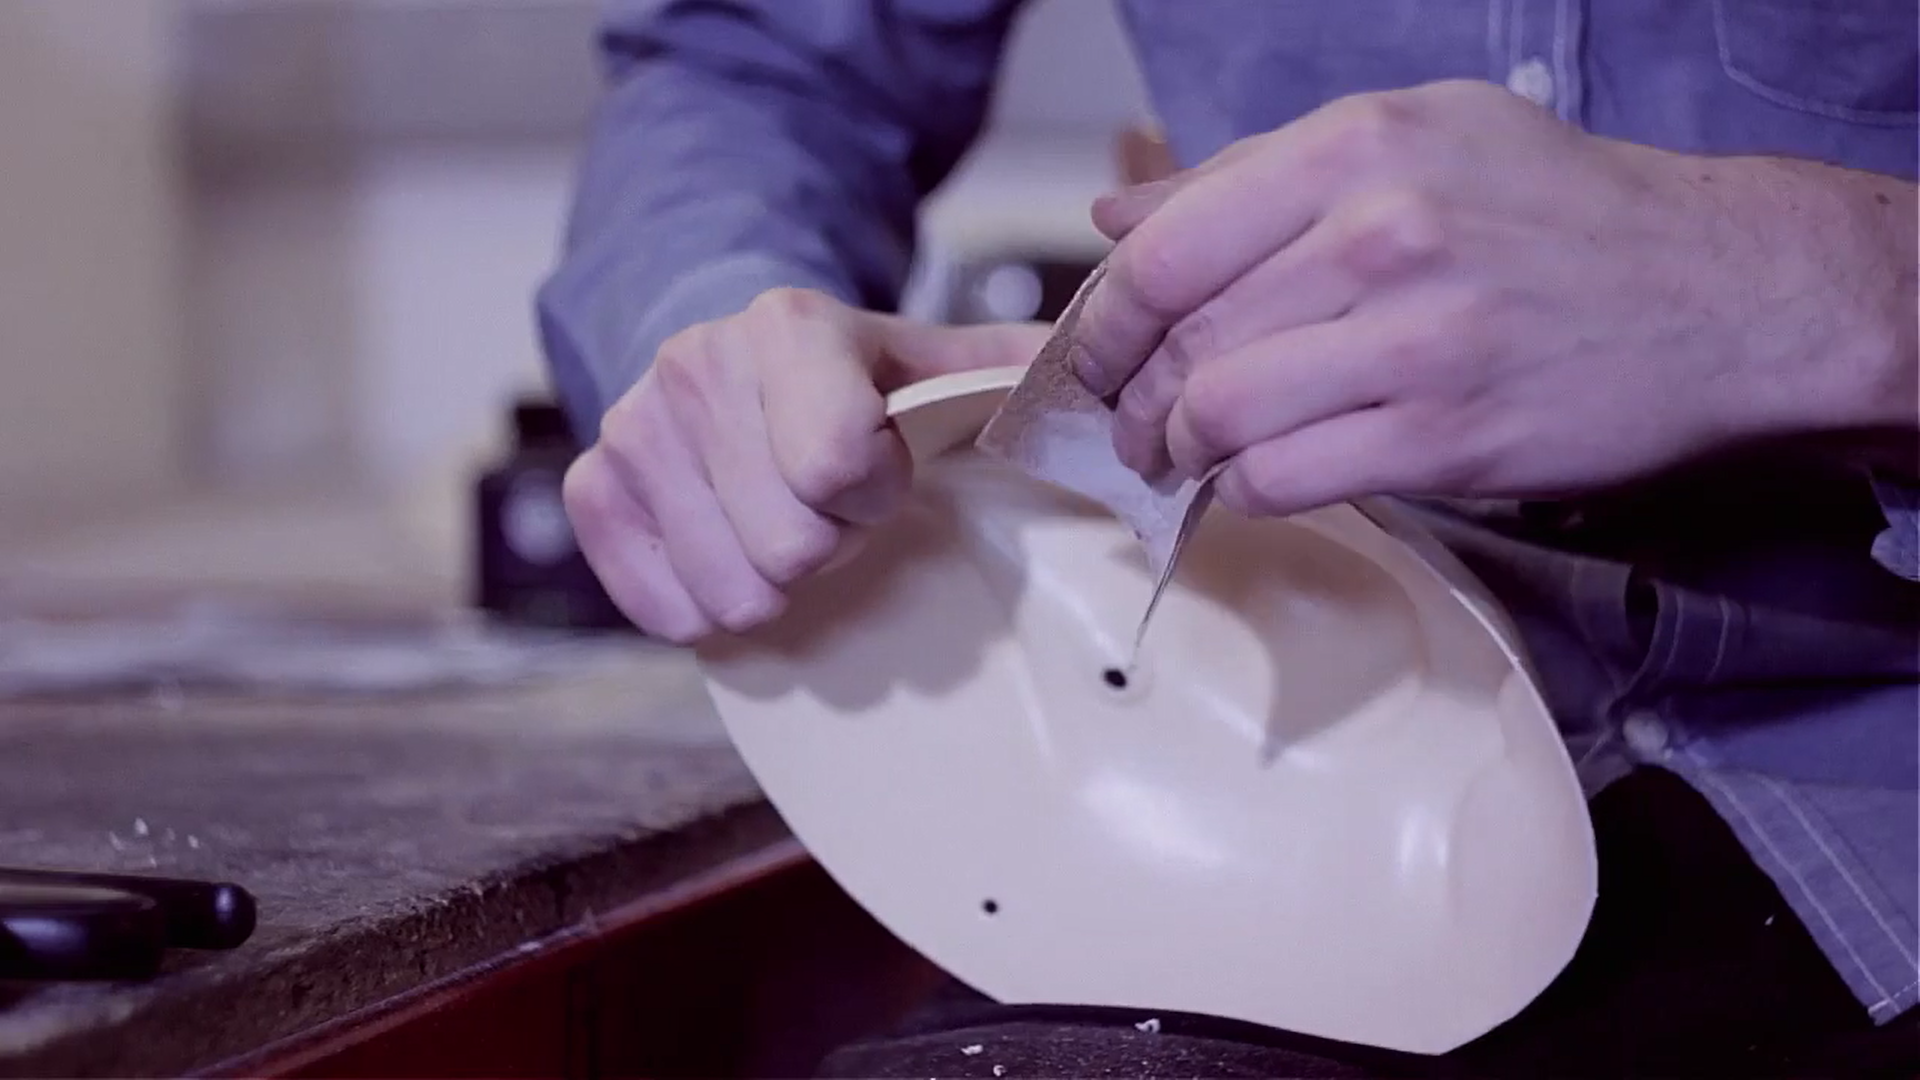 8)  We also sand around the edge of the mask so that it is smooth and comfortable to wear.